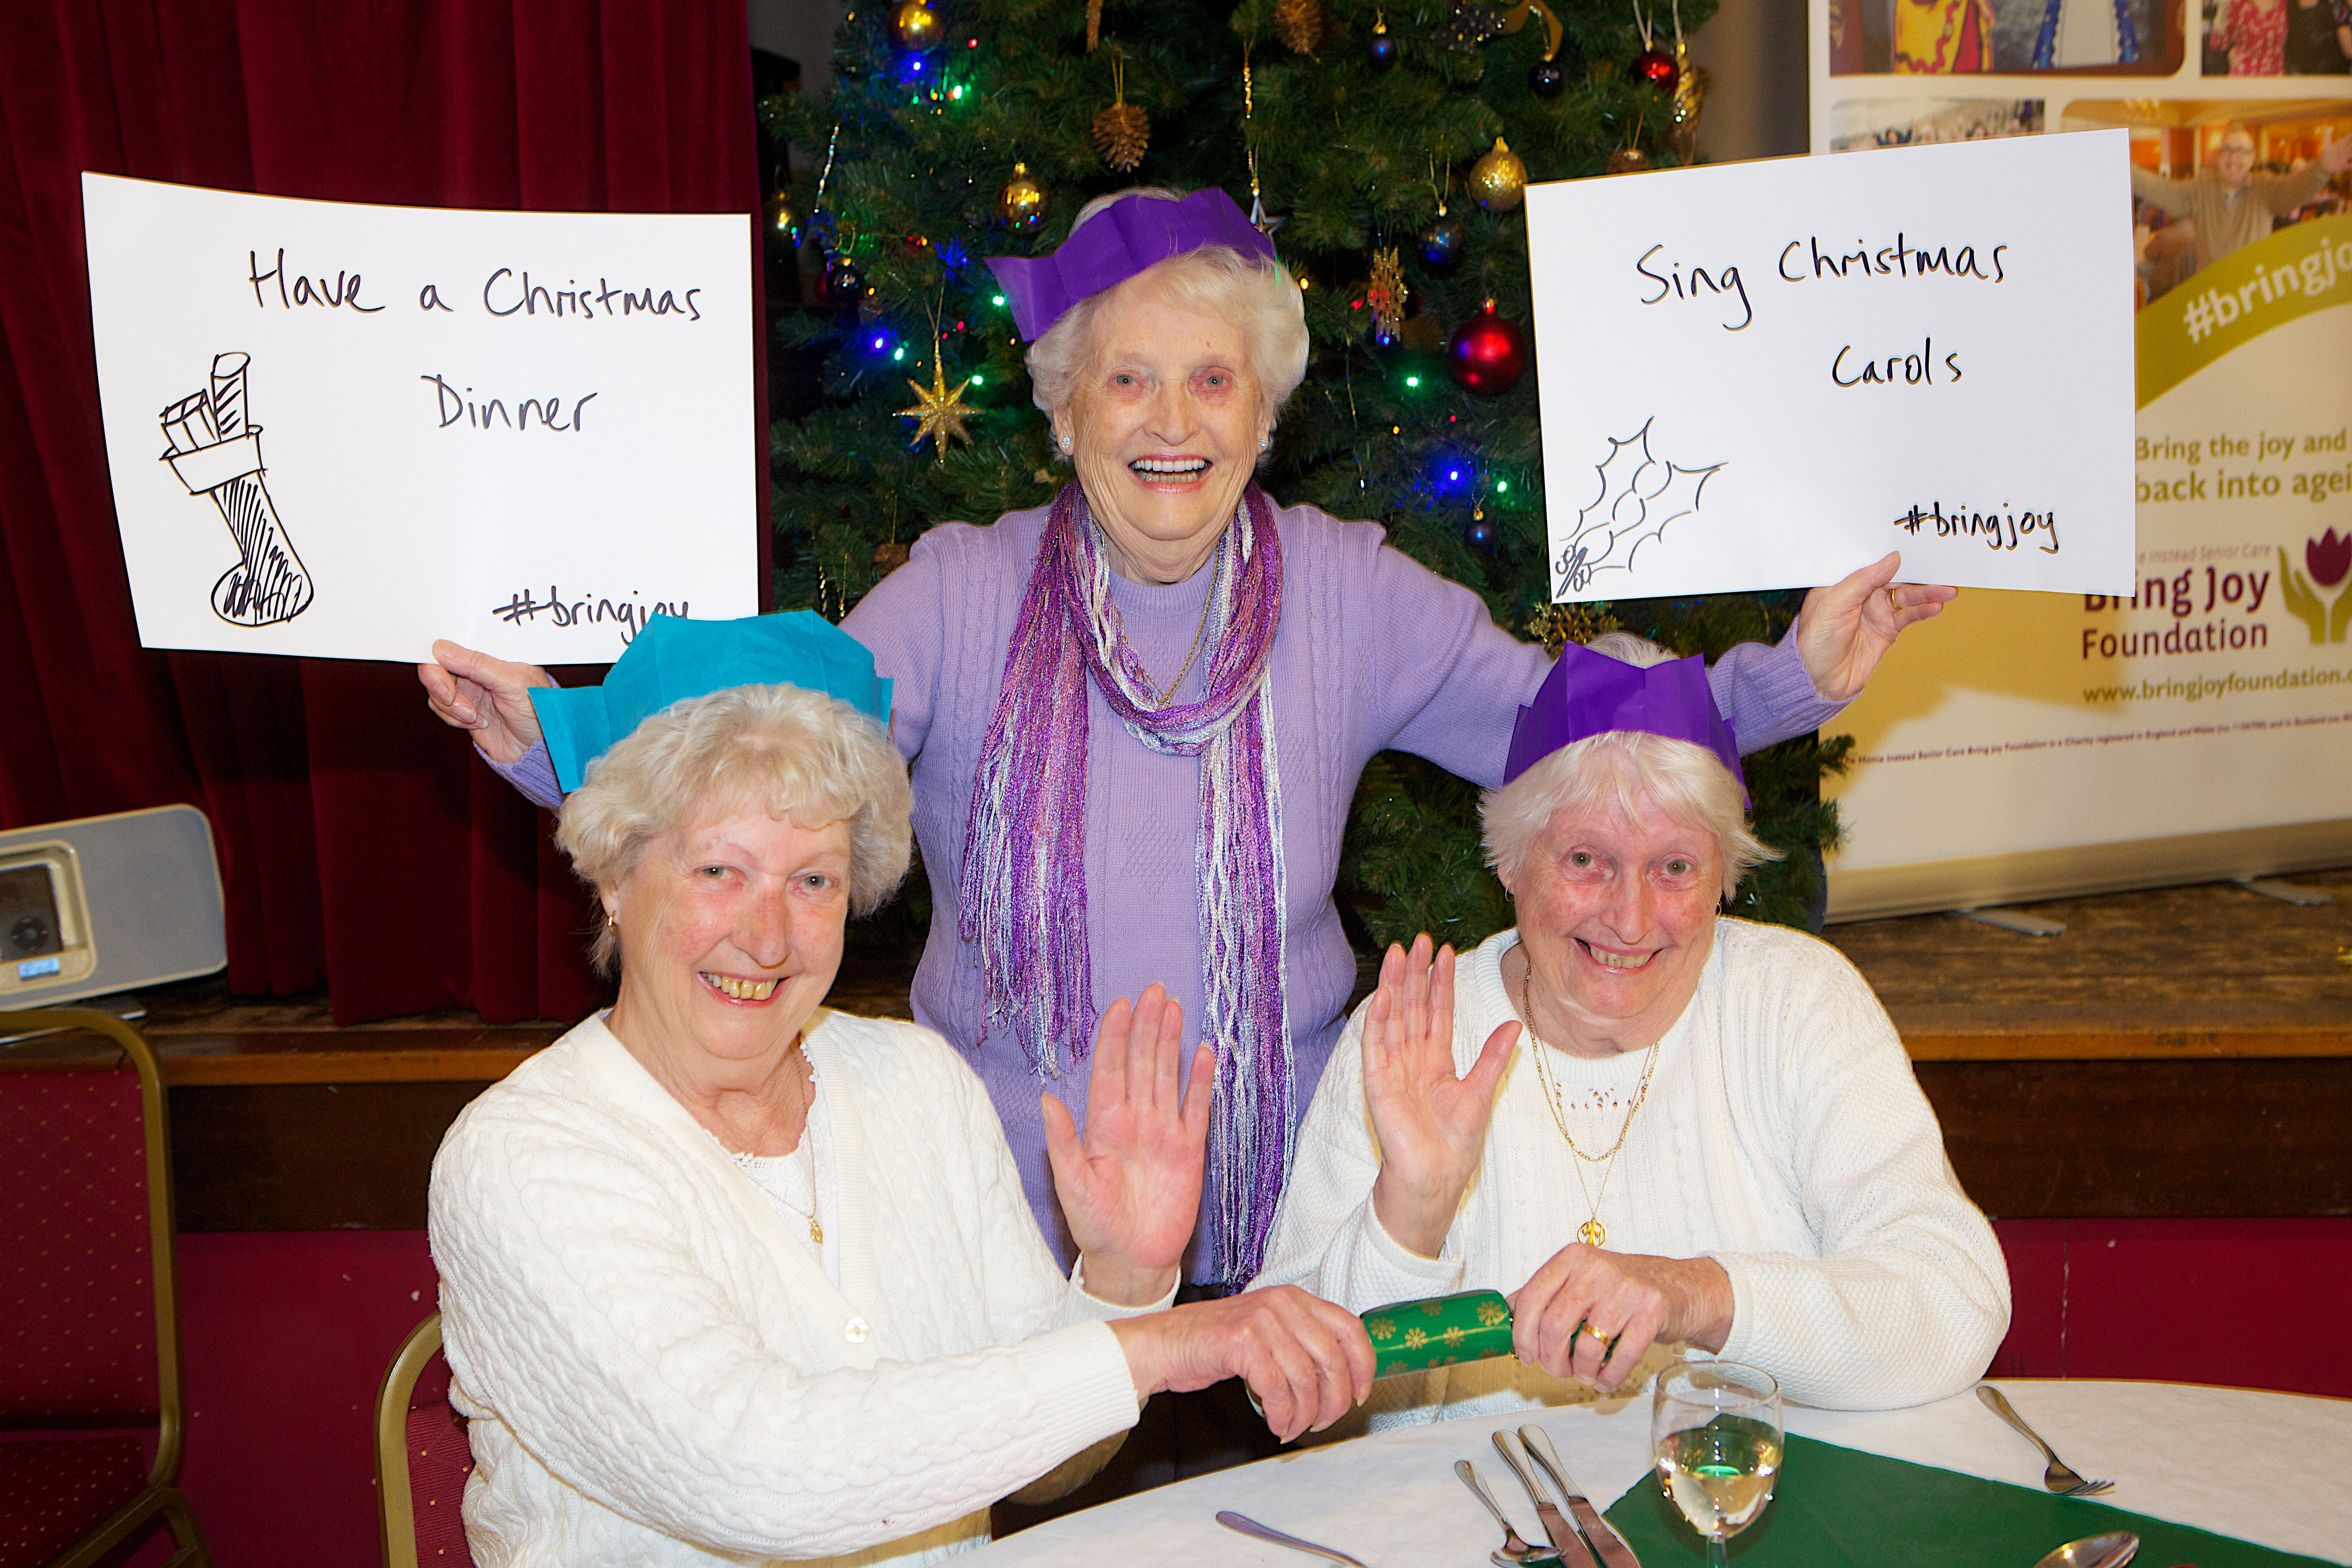 Kathleen Stubbs, Frances Blakemore and Christine Duffy with #bringjoy festive wishes on message boards